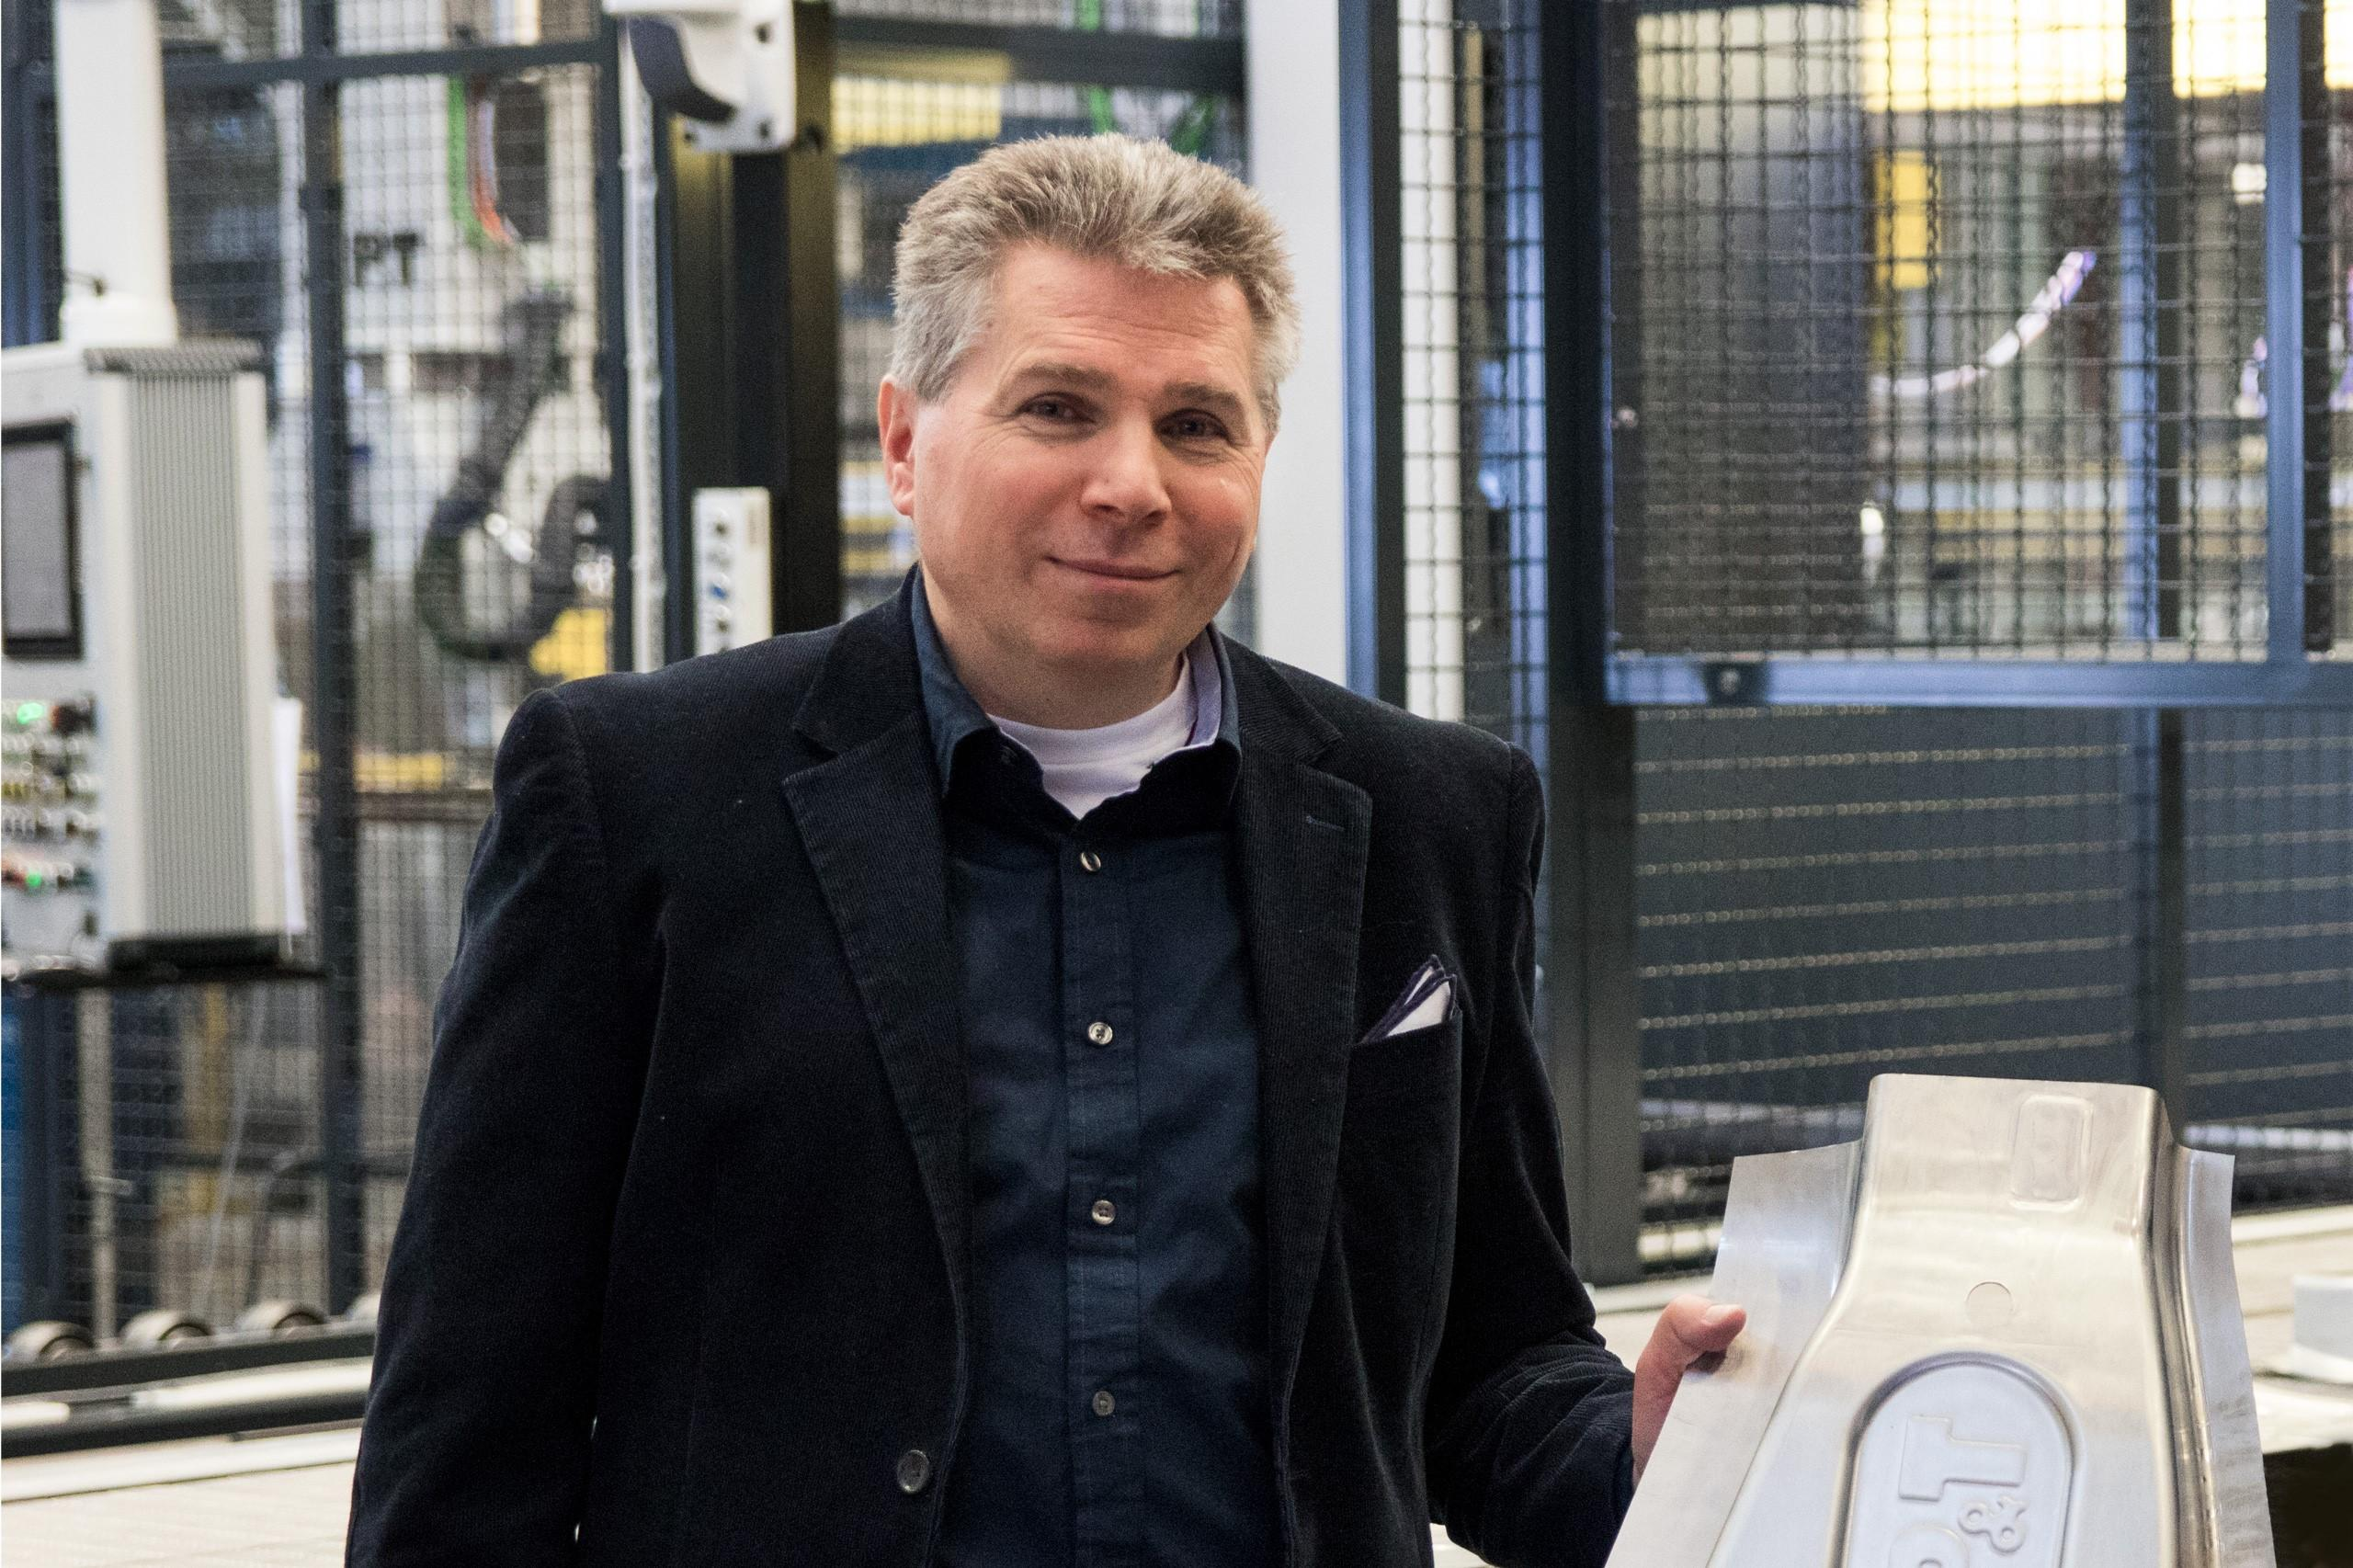 """Leichtbaulösungen aus hochfestem Aluminium können dazu beitragen, die Reichweite von Elektrofahrzeugen zu verbessern"", erklärt Per Josefsson, Director Business Development and Marketing bei AP&T."